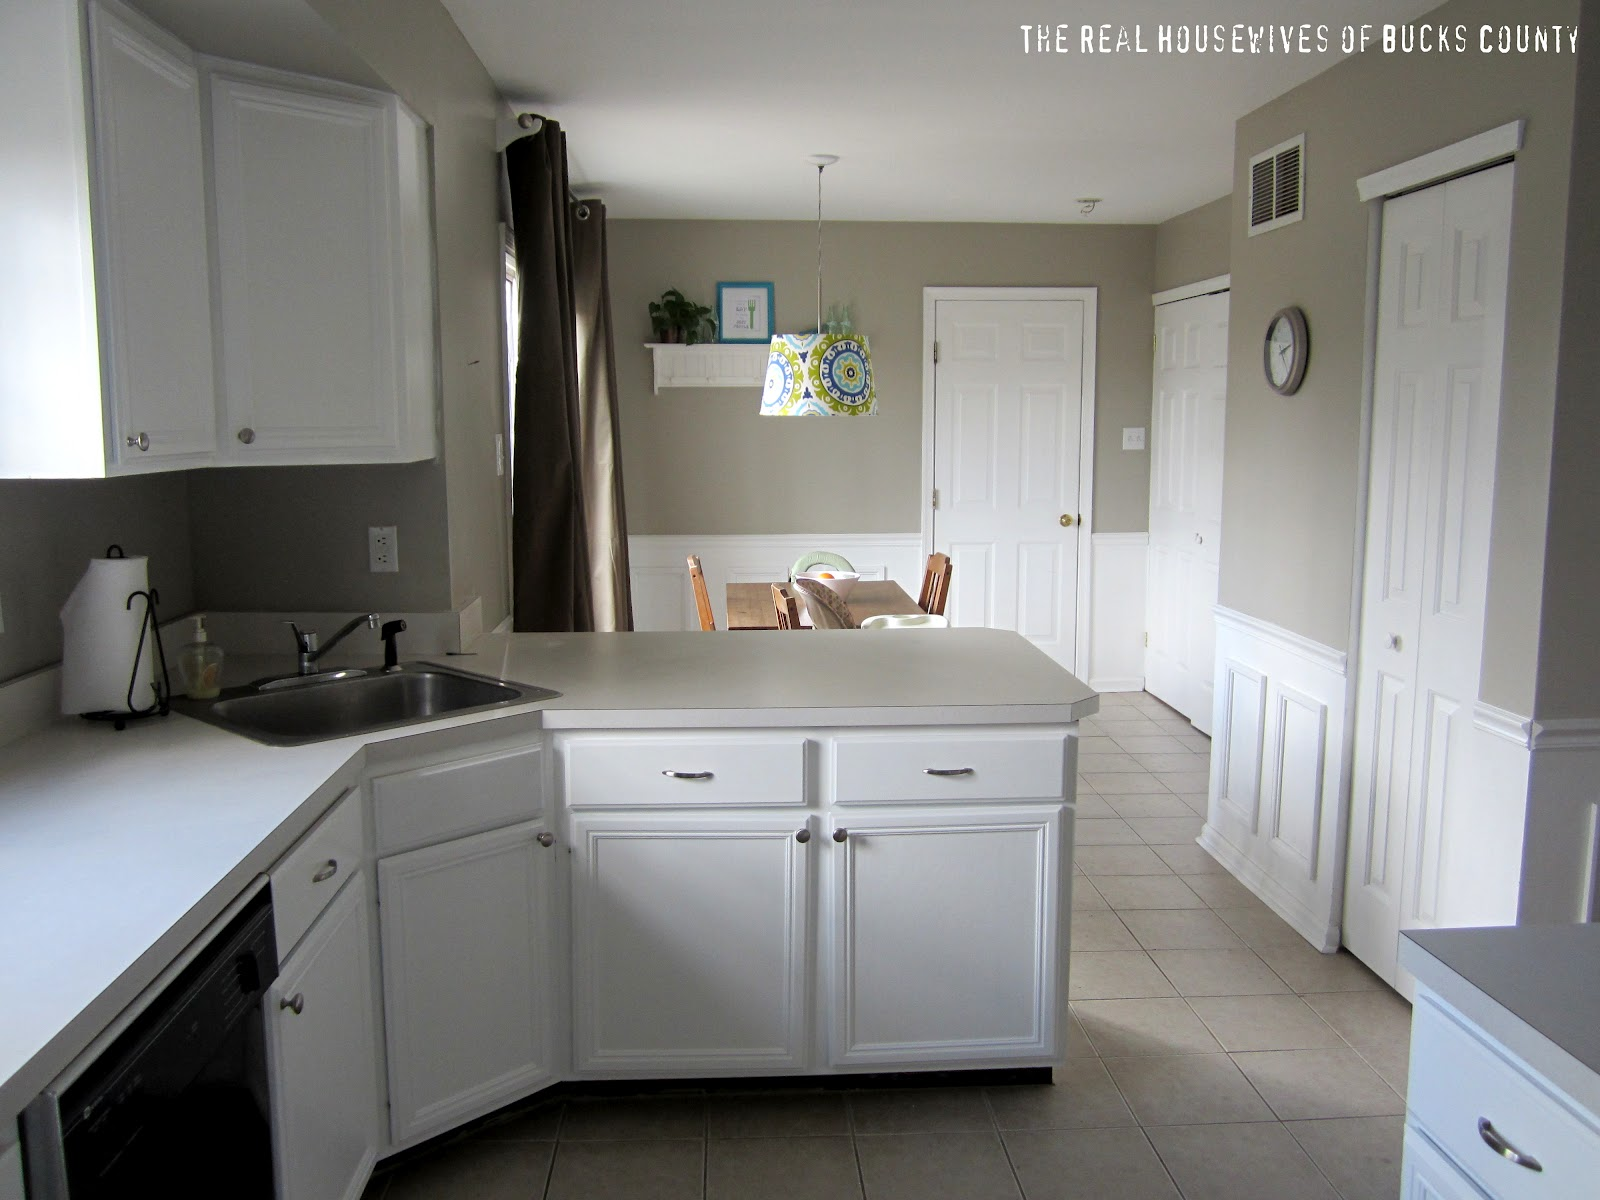 valspar paint colors for kitchen white cabinet reveal kitchen update east coast 8798